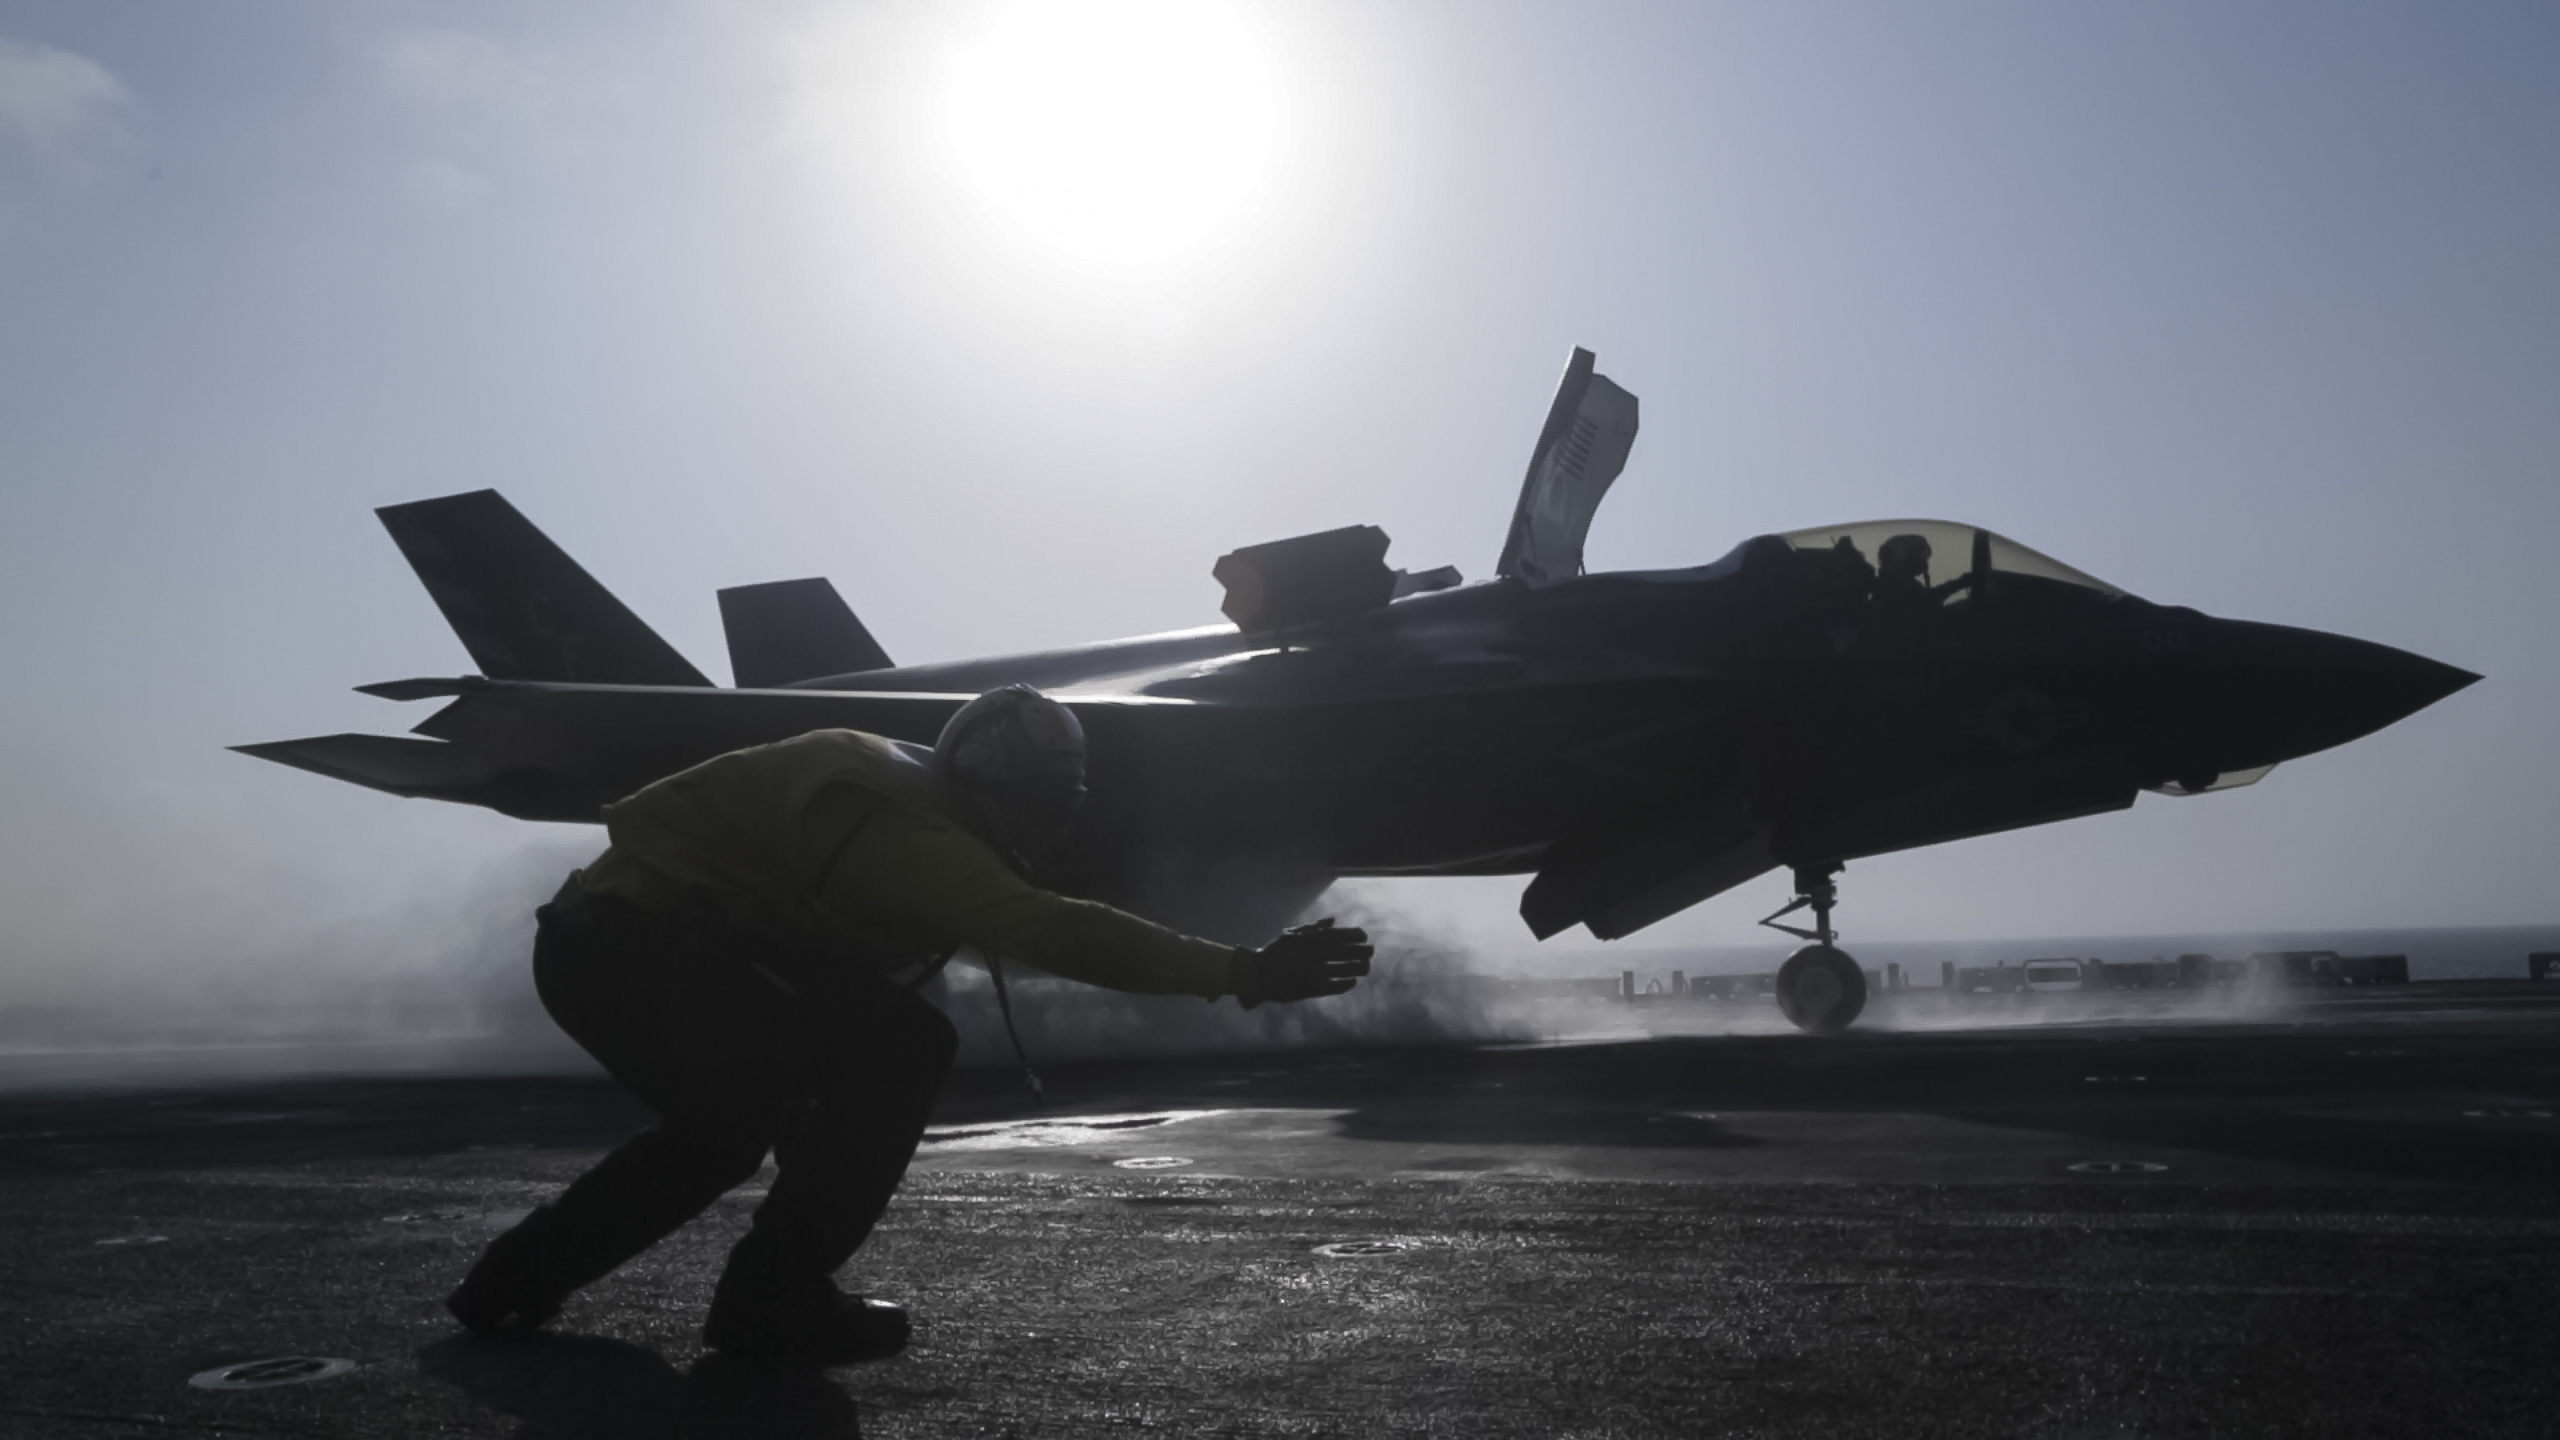 Marines' F-35B Joint Strike Fighter Conducts First-Ever